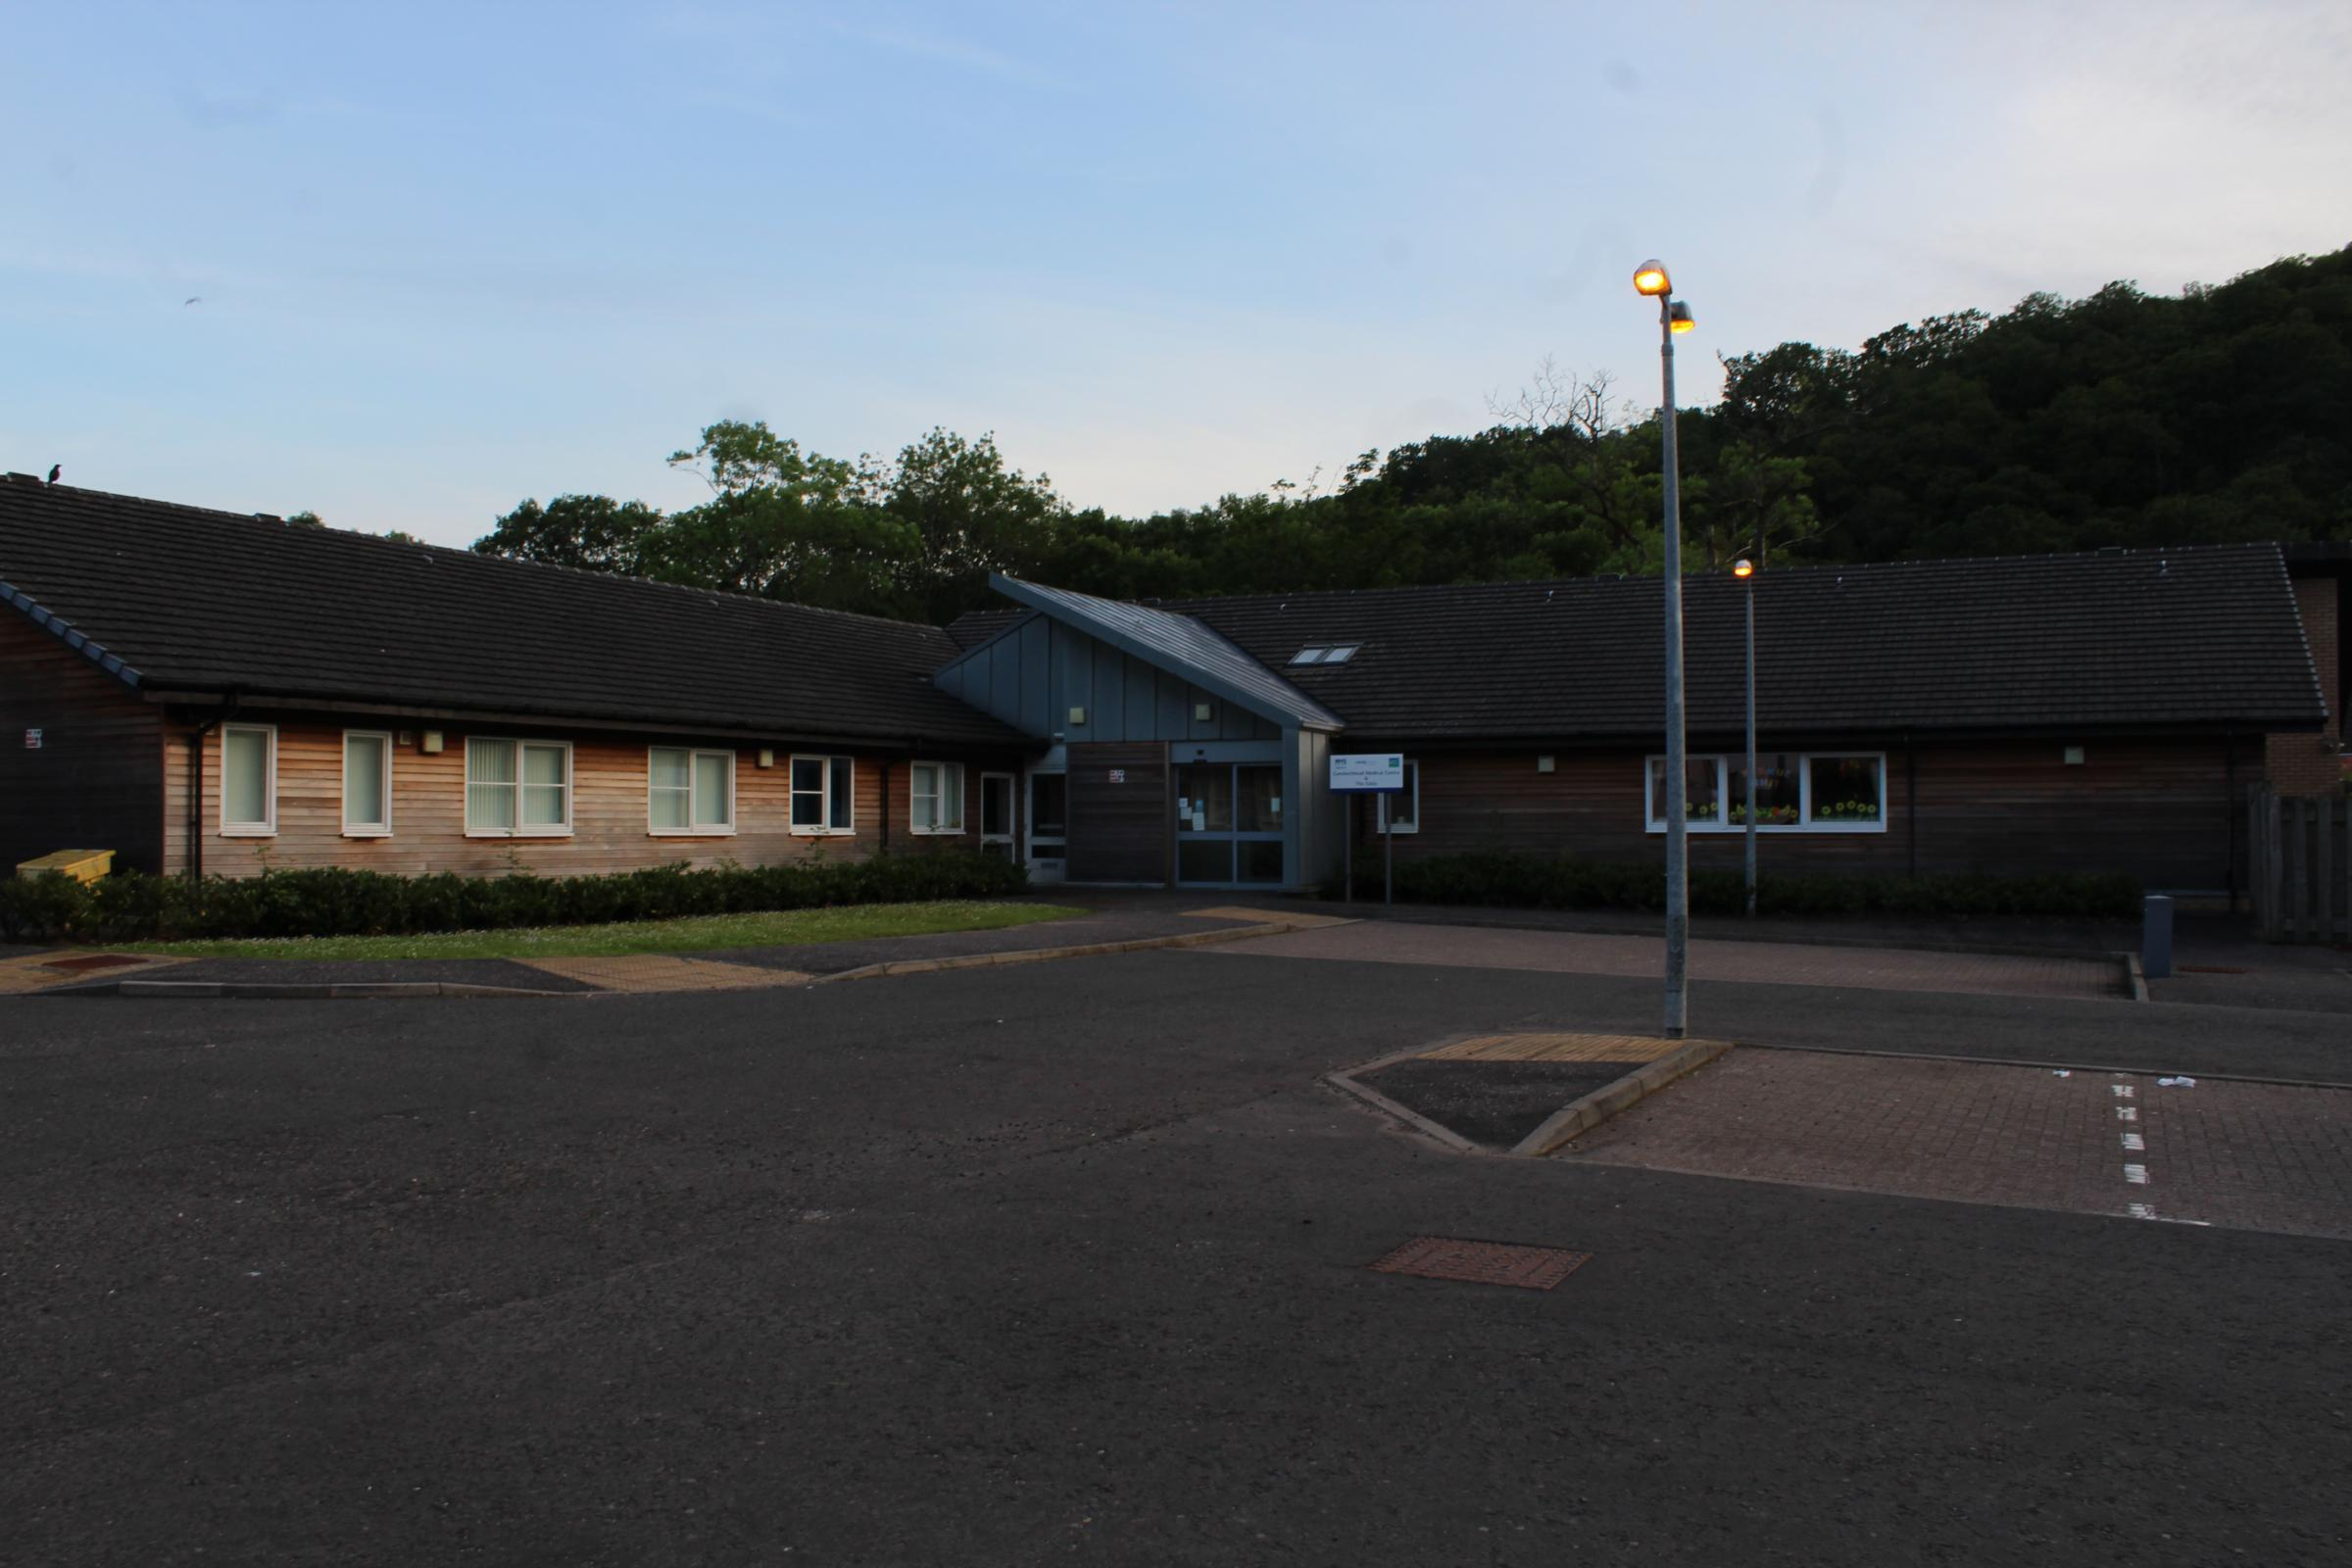 The Garelochhead medical centre is evidence that the village is not being left behind, according to local councillor George Freeman